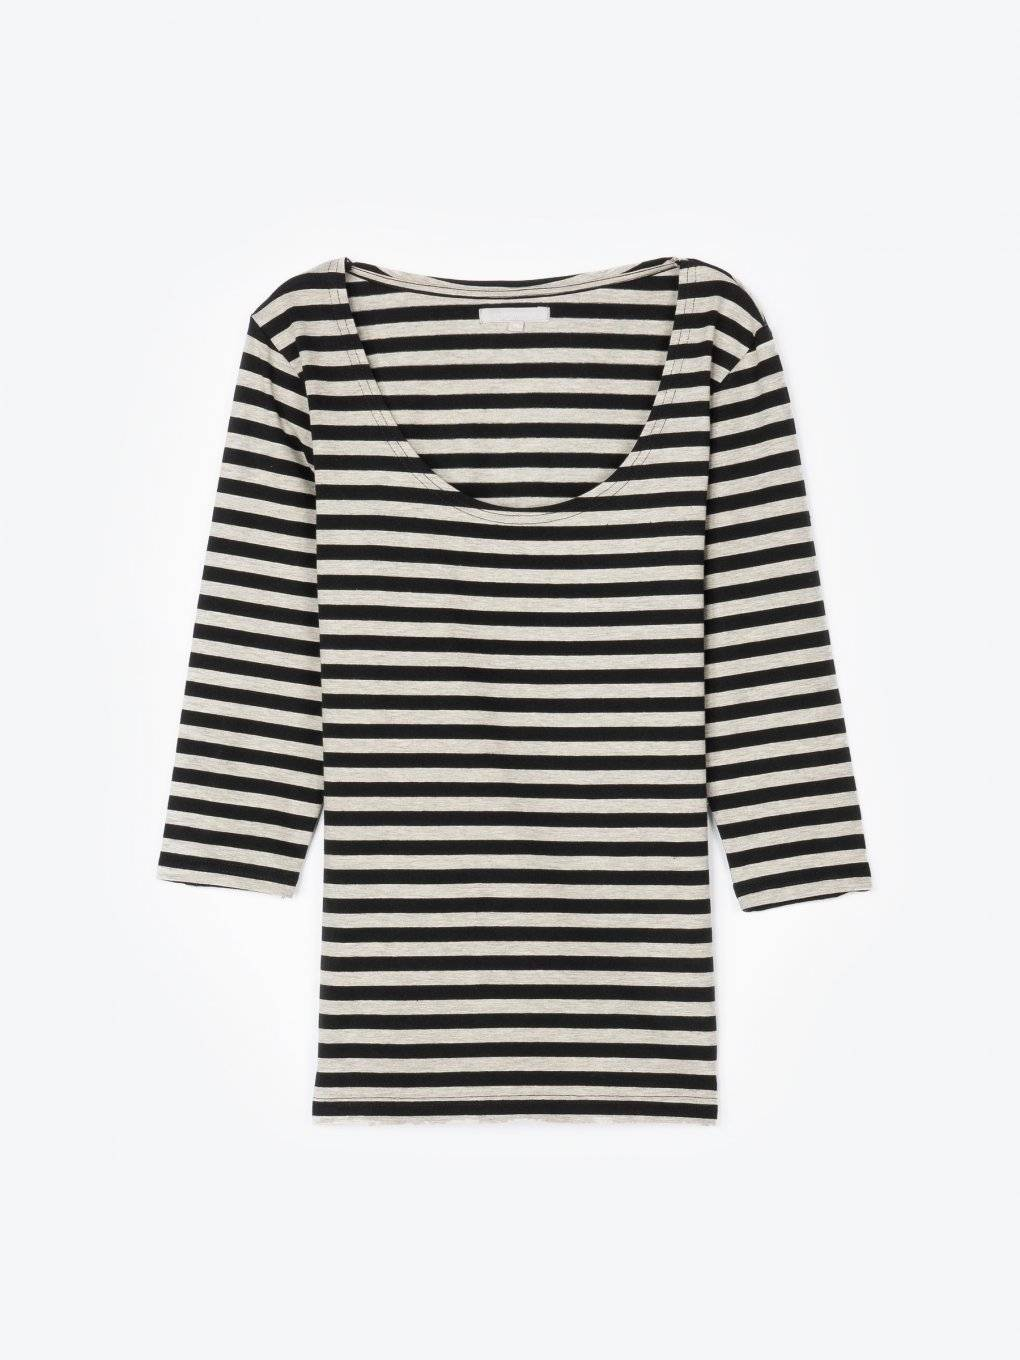 Striped 3/4 sleeve crew neck t-shirt